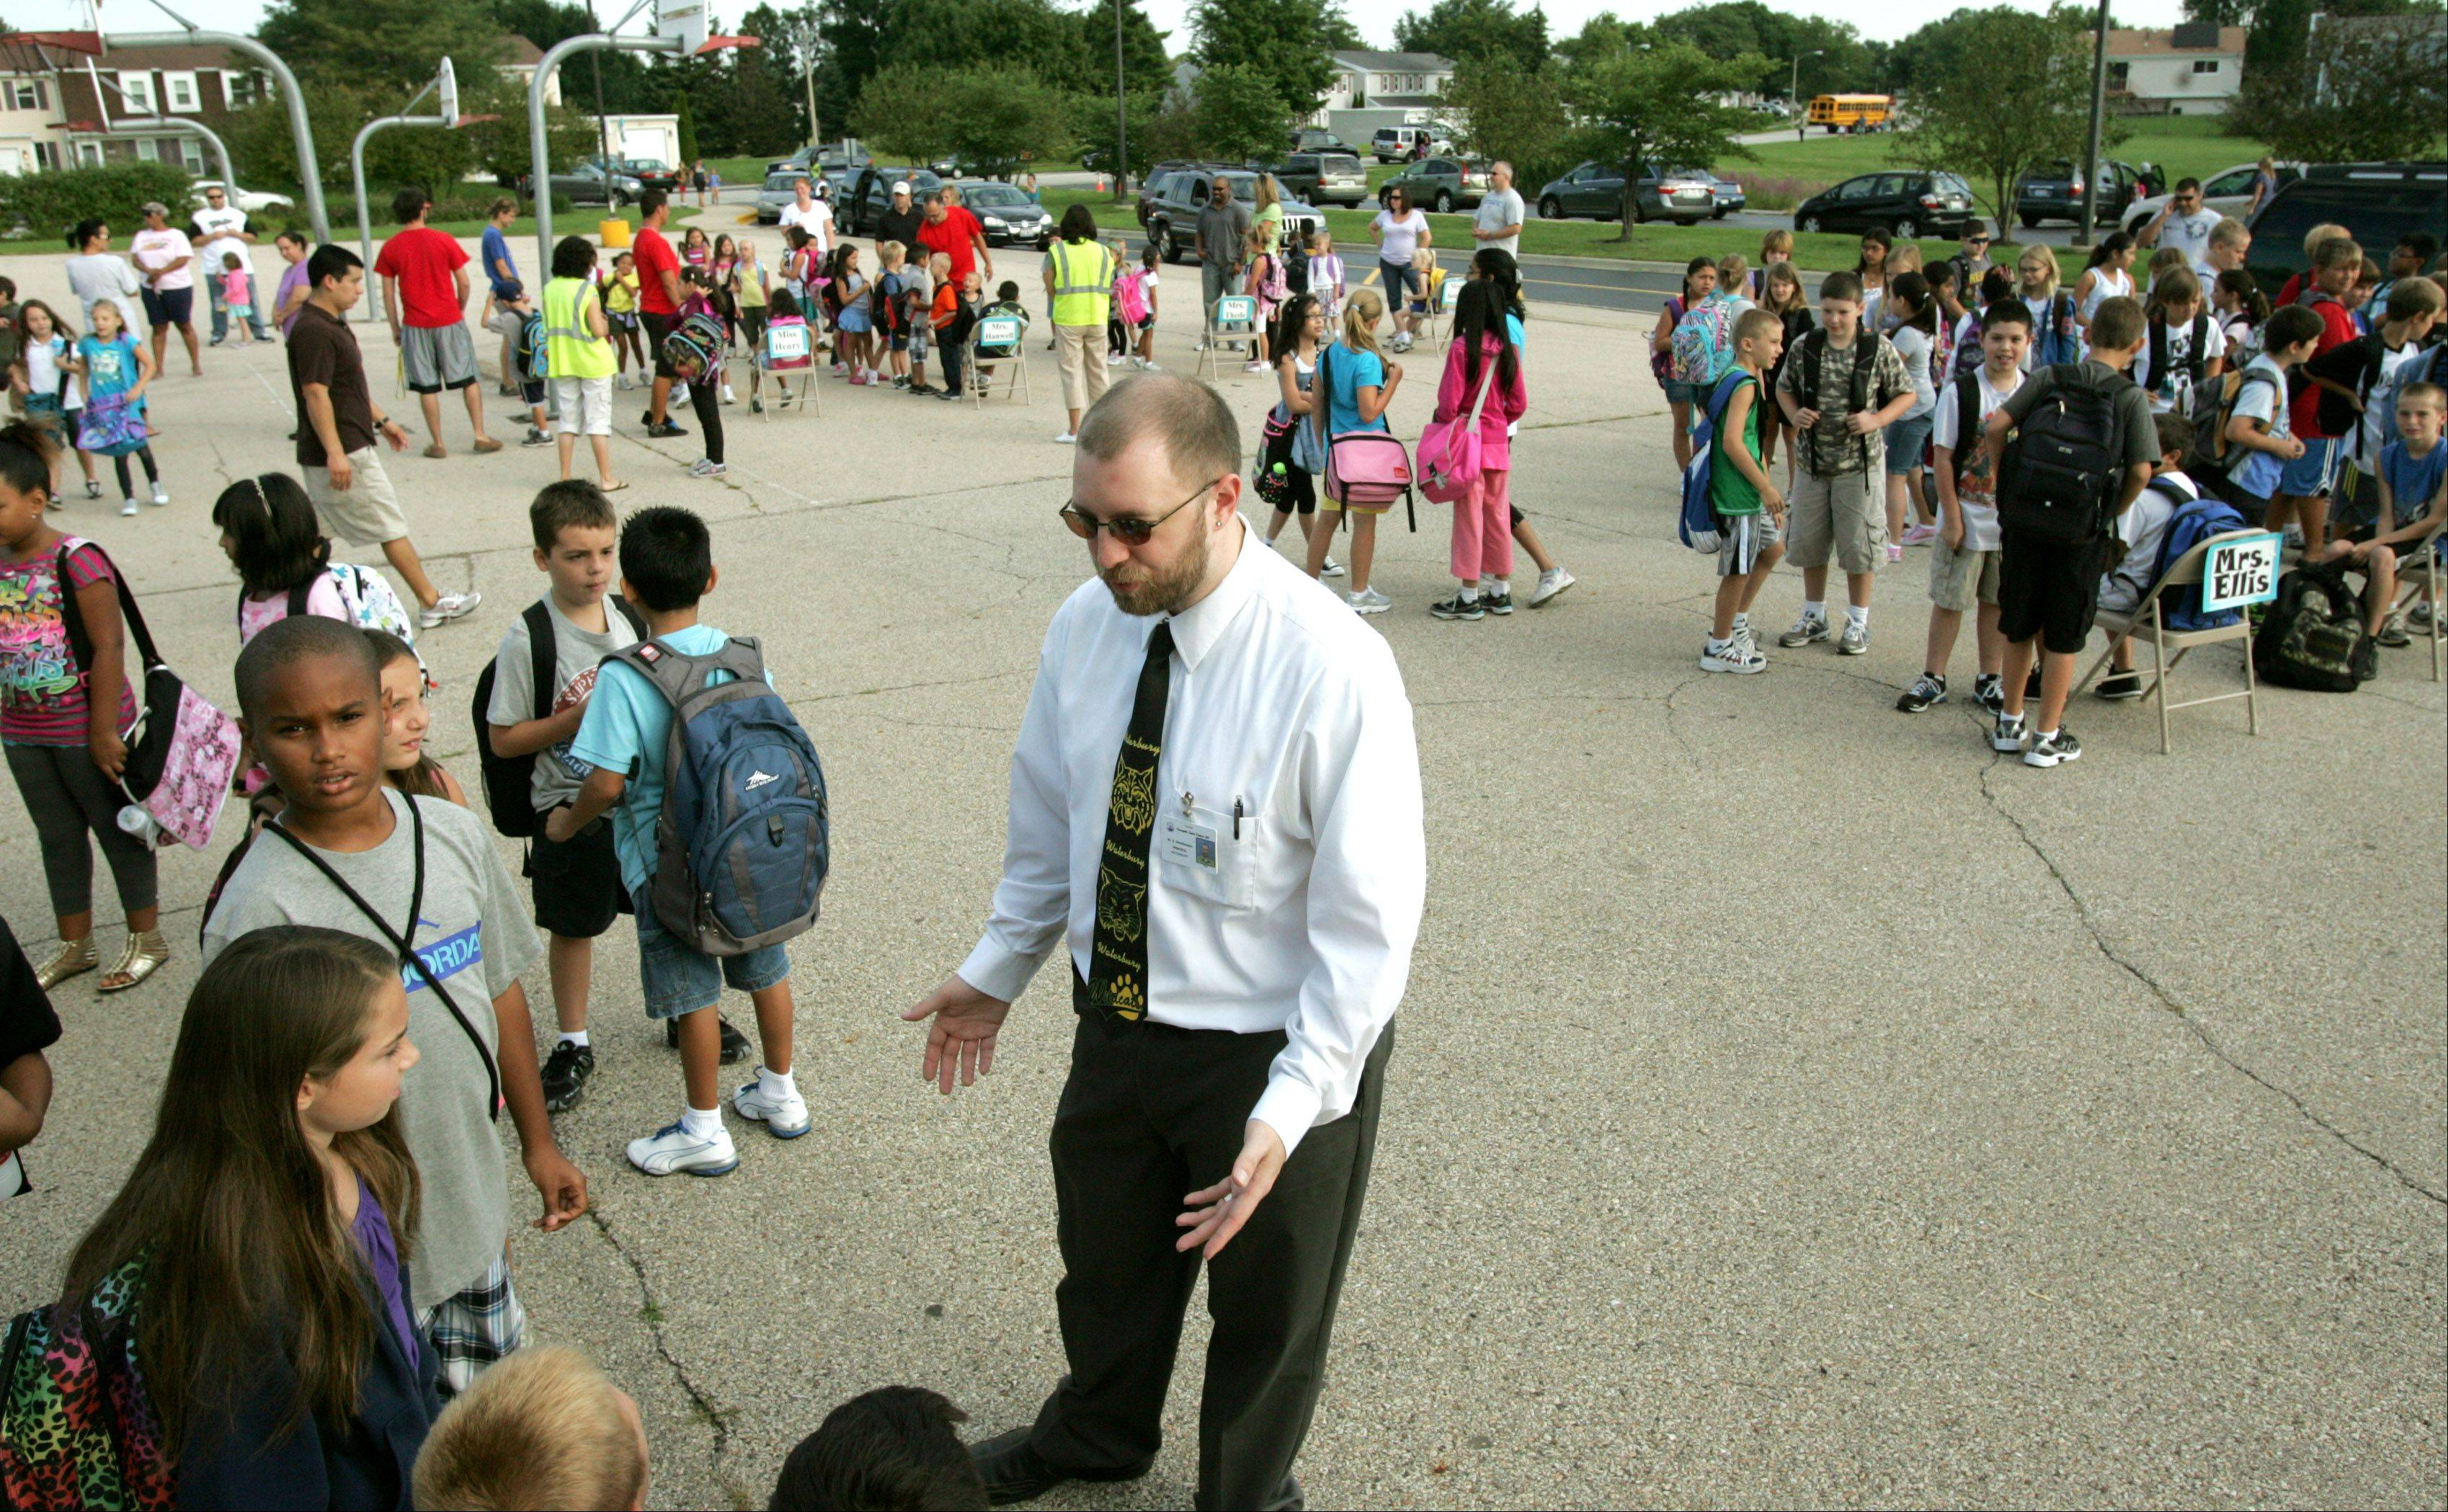 After controversial firing, Roselle school welcomes new principal